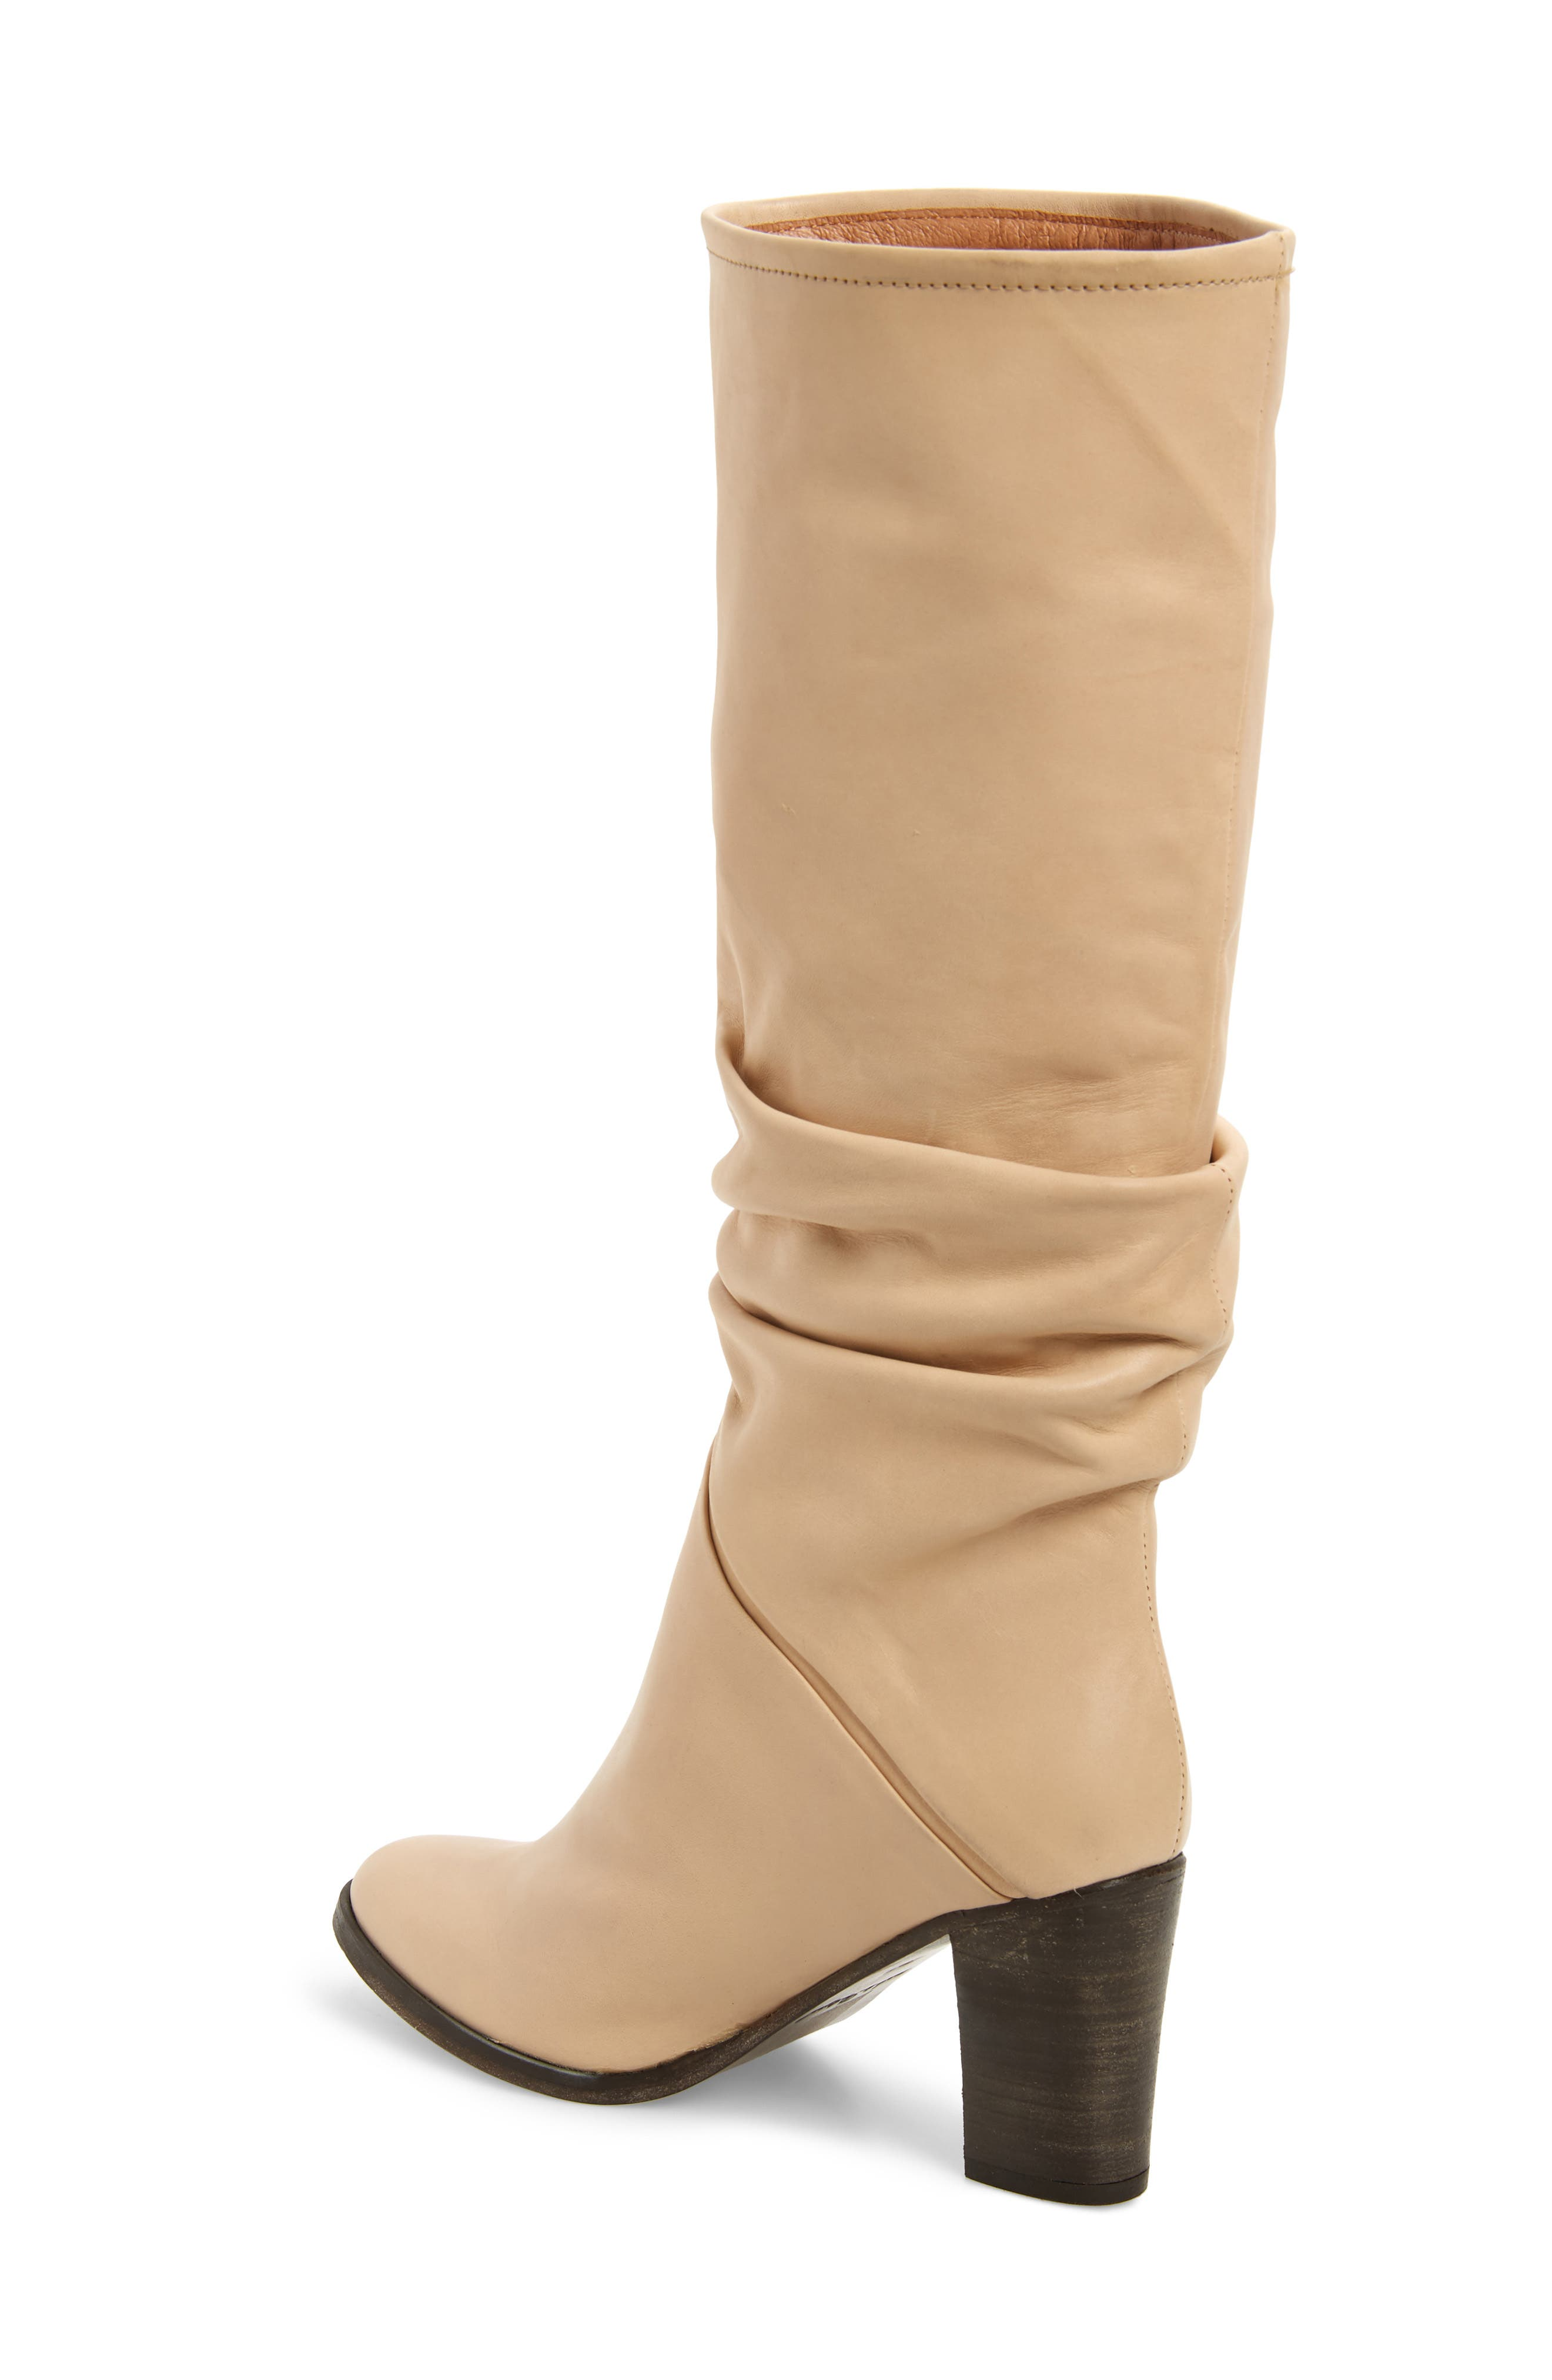 Tennison Knee High Boot,                             Alternate thumbnail 2, color,                             BEIGE LEATHER